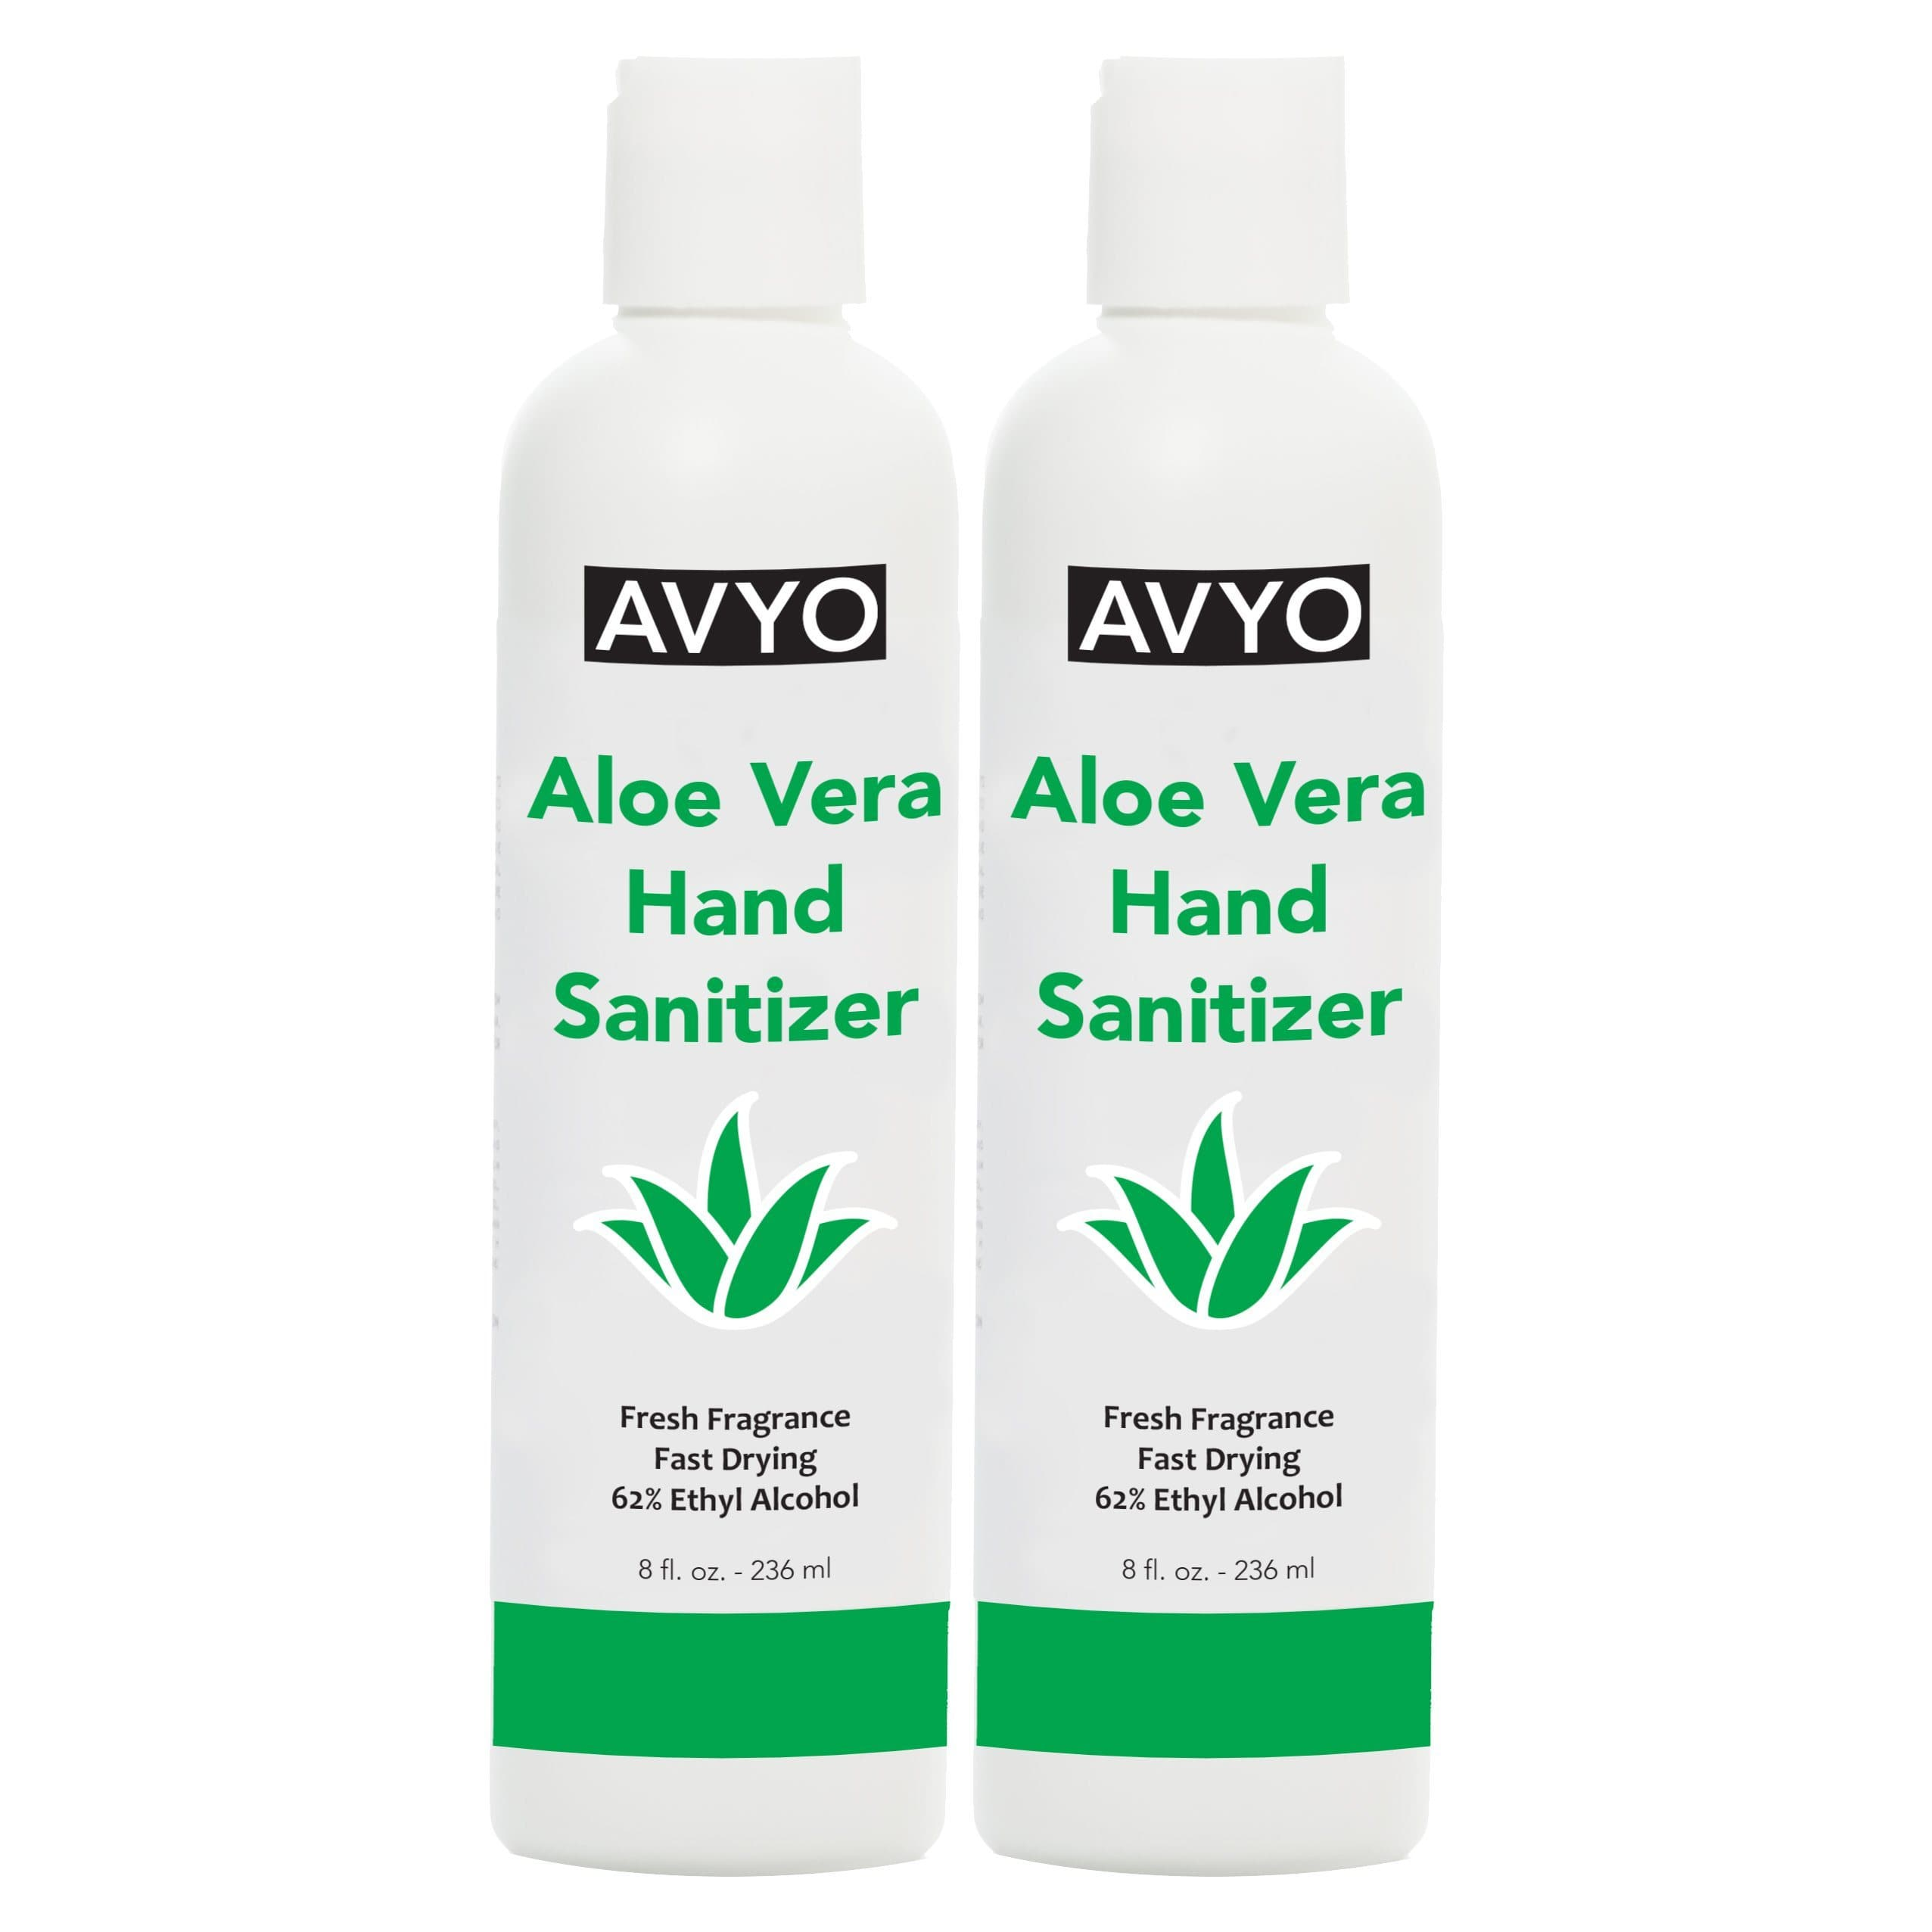 Aloe Vera Hand Sanitizer | Ethyl Alcohol 62% | Gel | Made in USA [ FDA Registered ] | AVYO | SHSalons.com